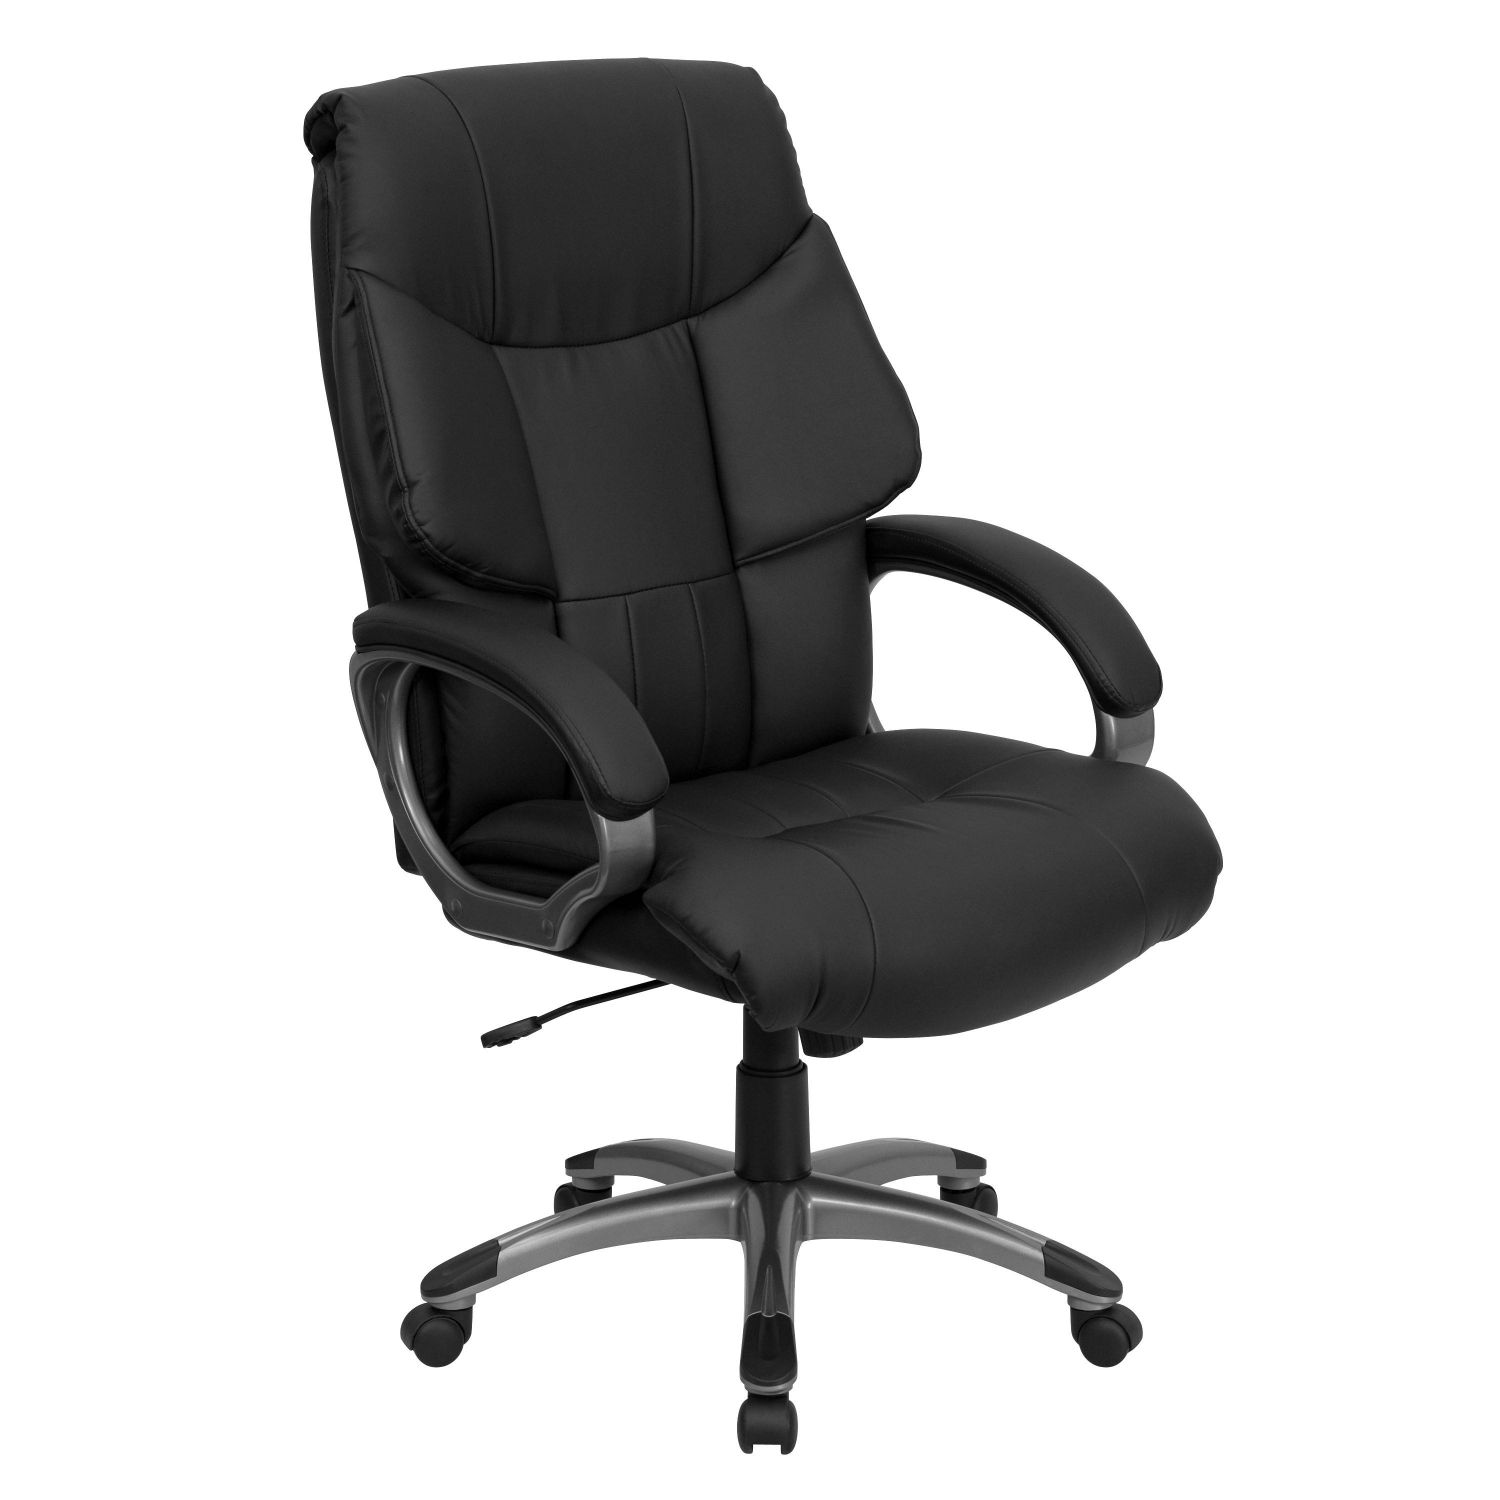 Flash Furniture BT-9123-BK-GG High Back Black Leather Executive Office Chair